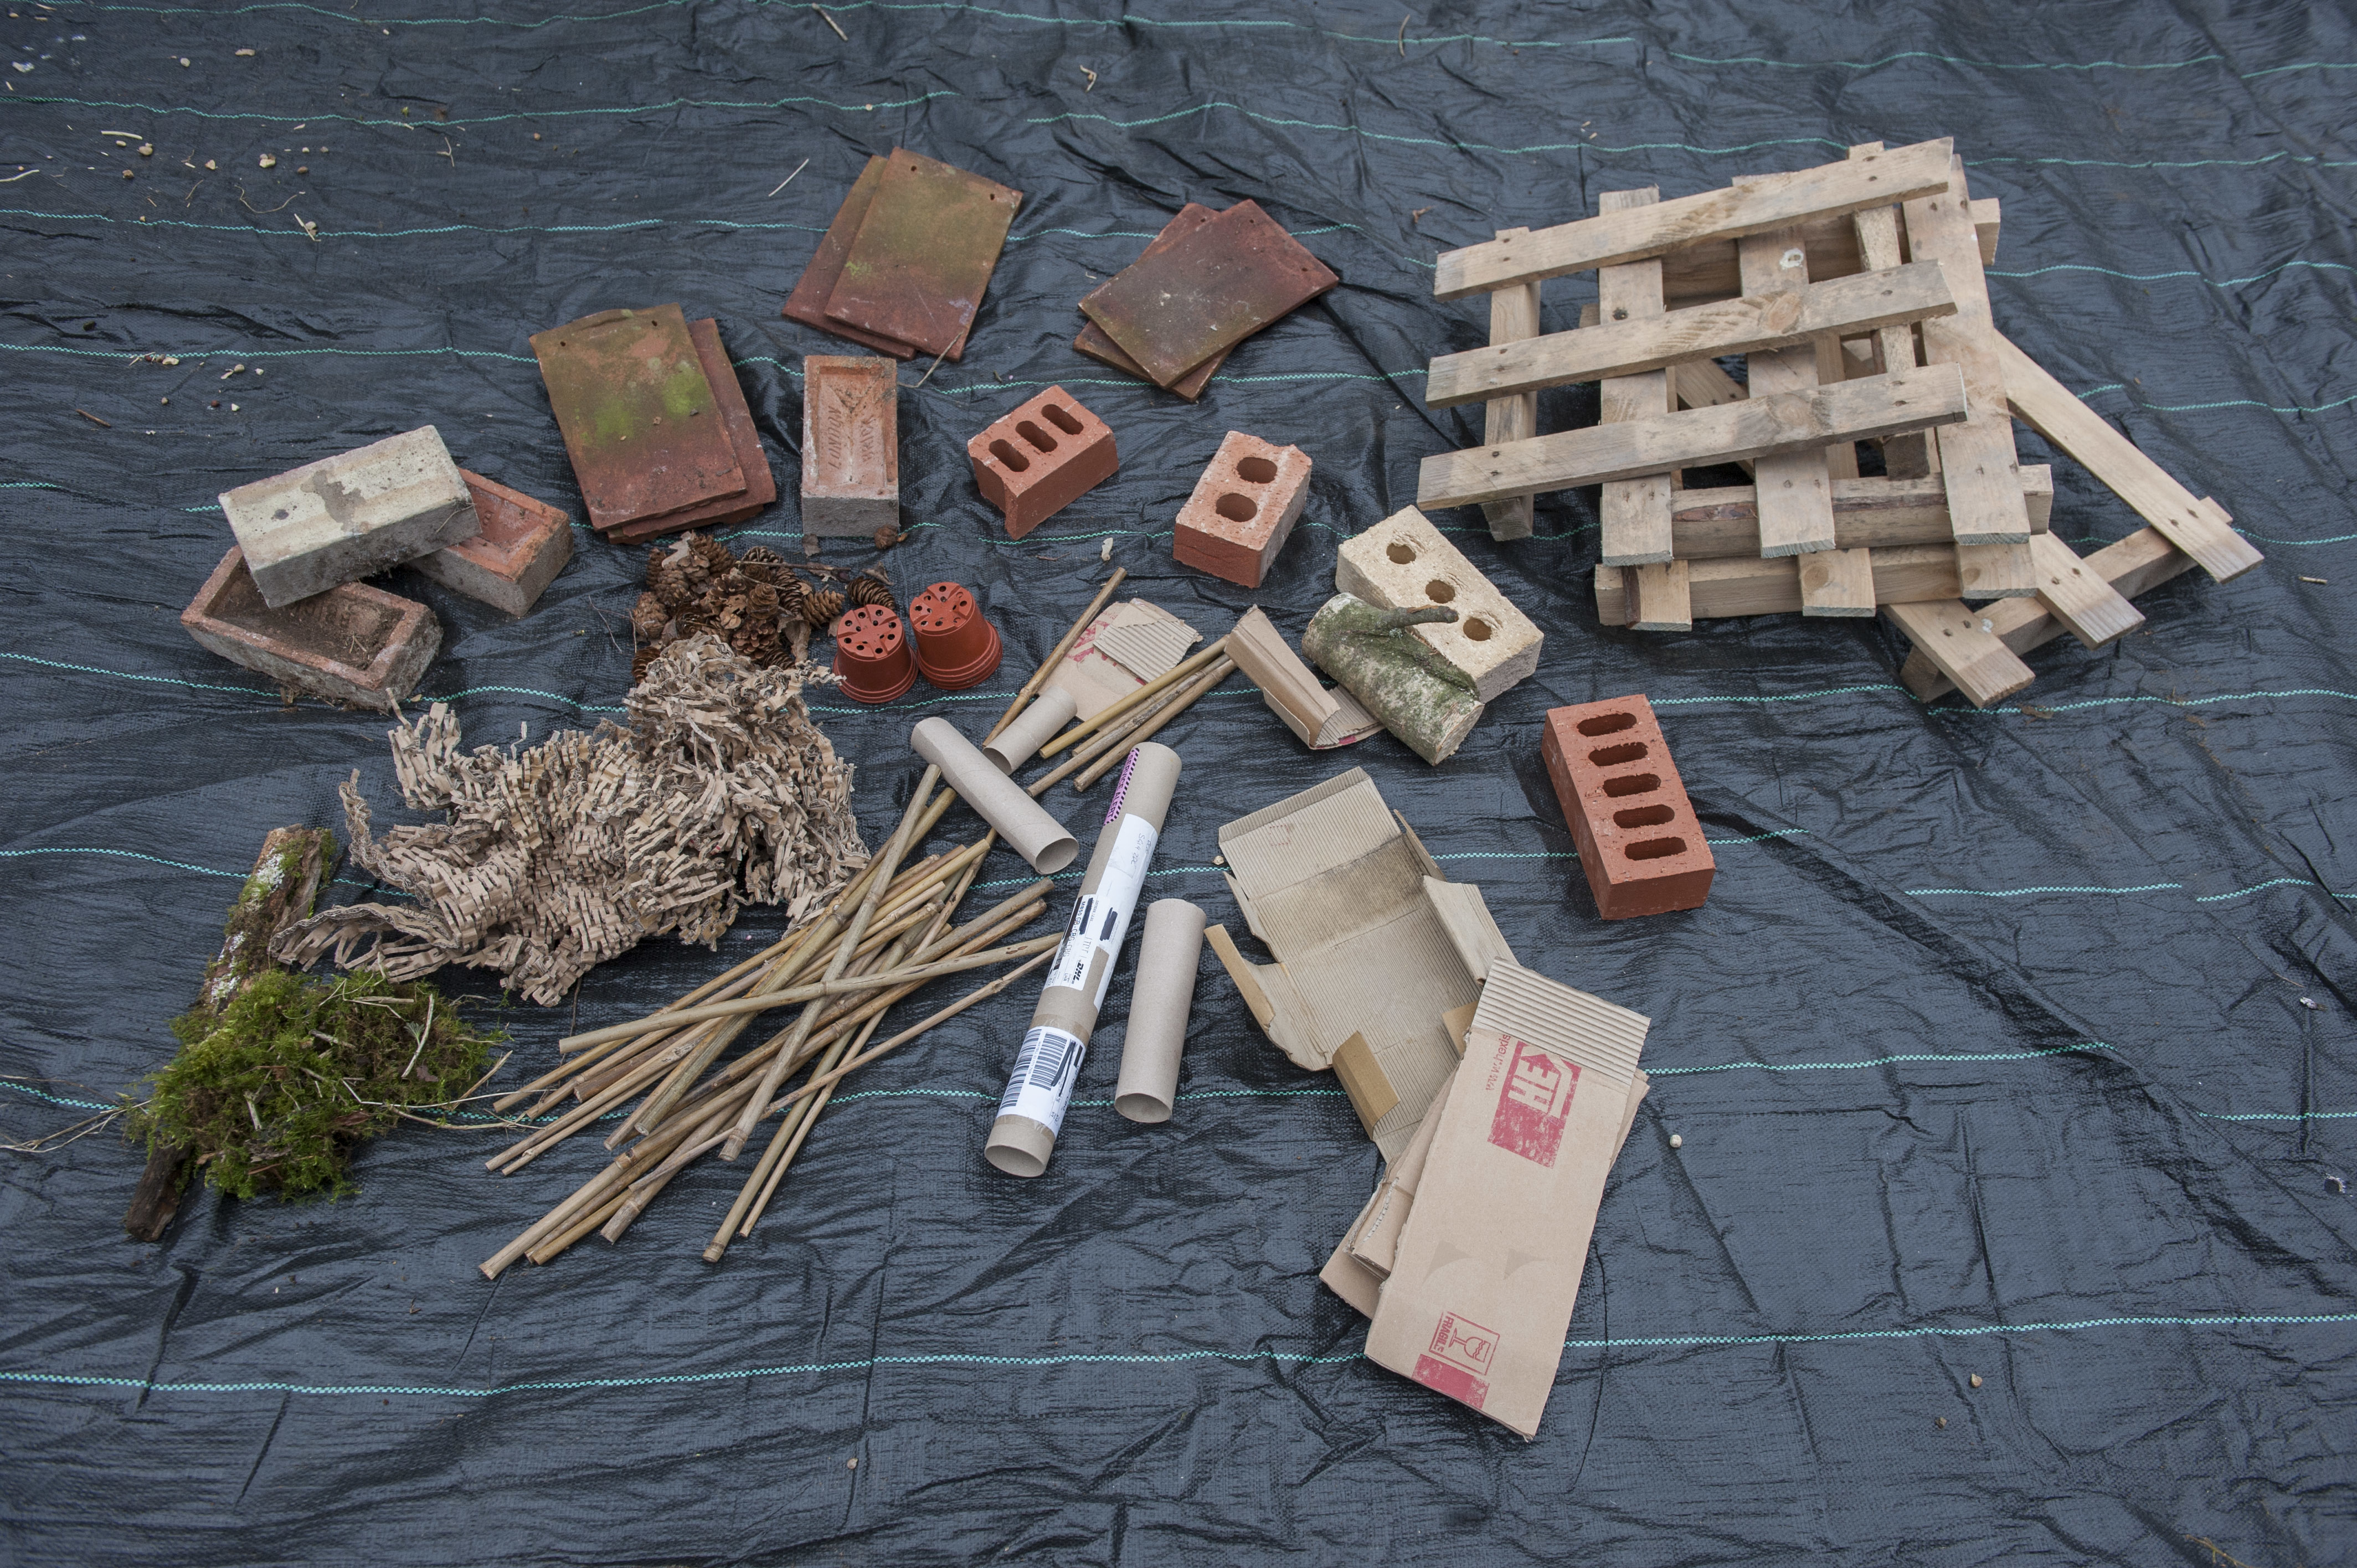 Bug hotel components (RSPB/PA)